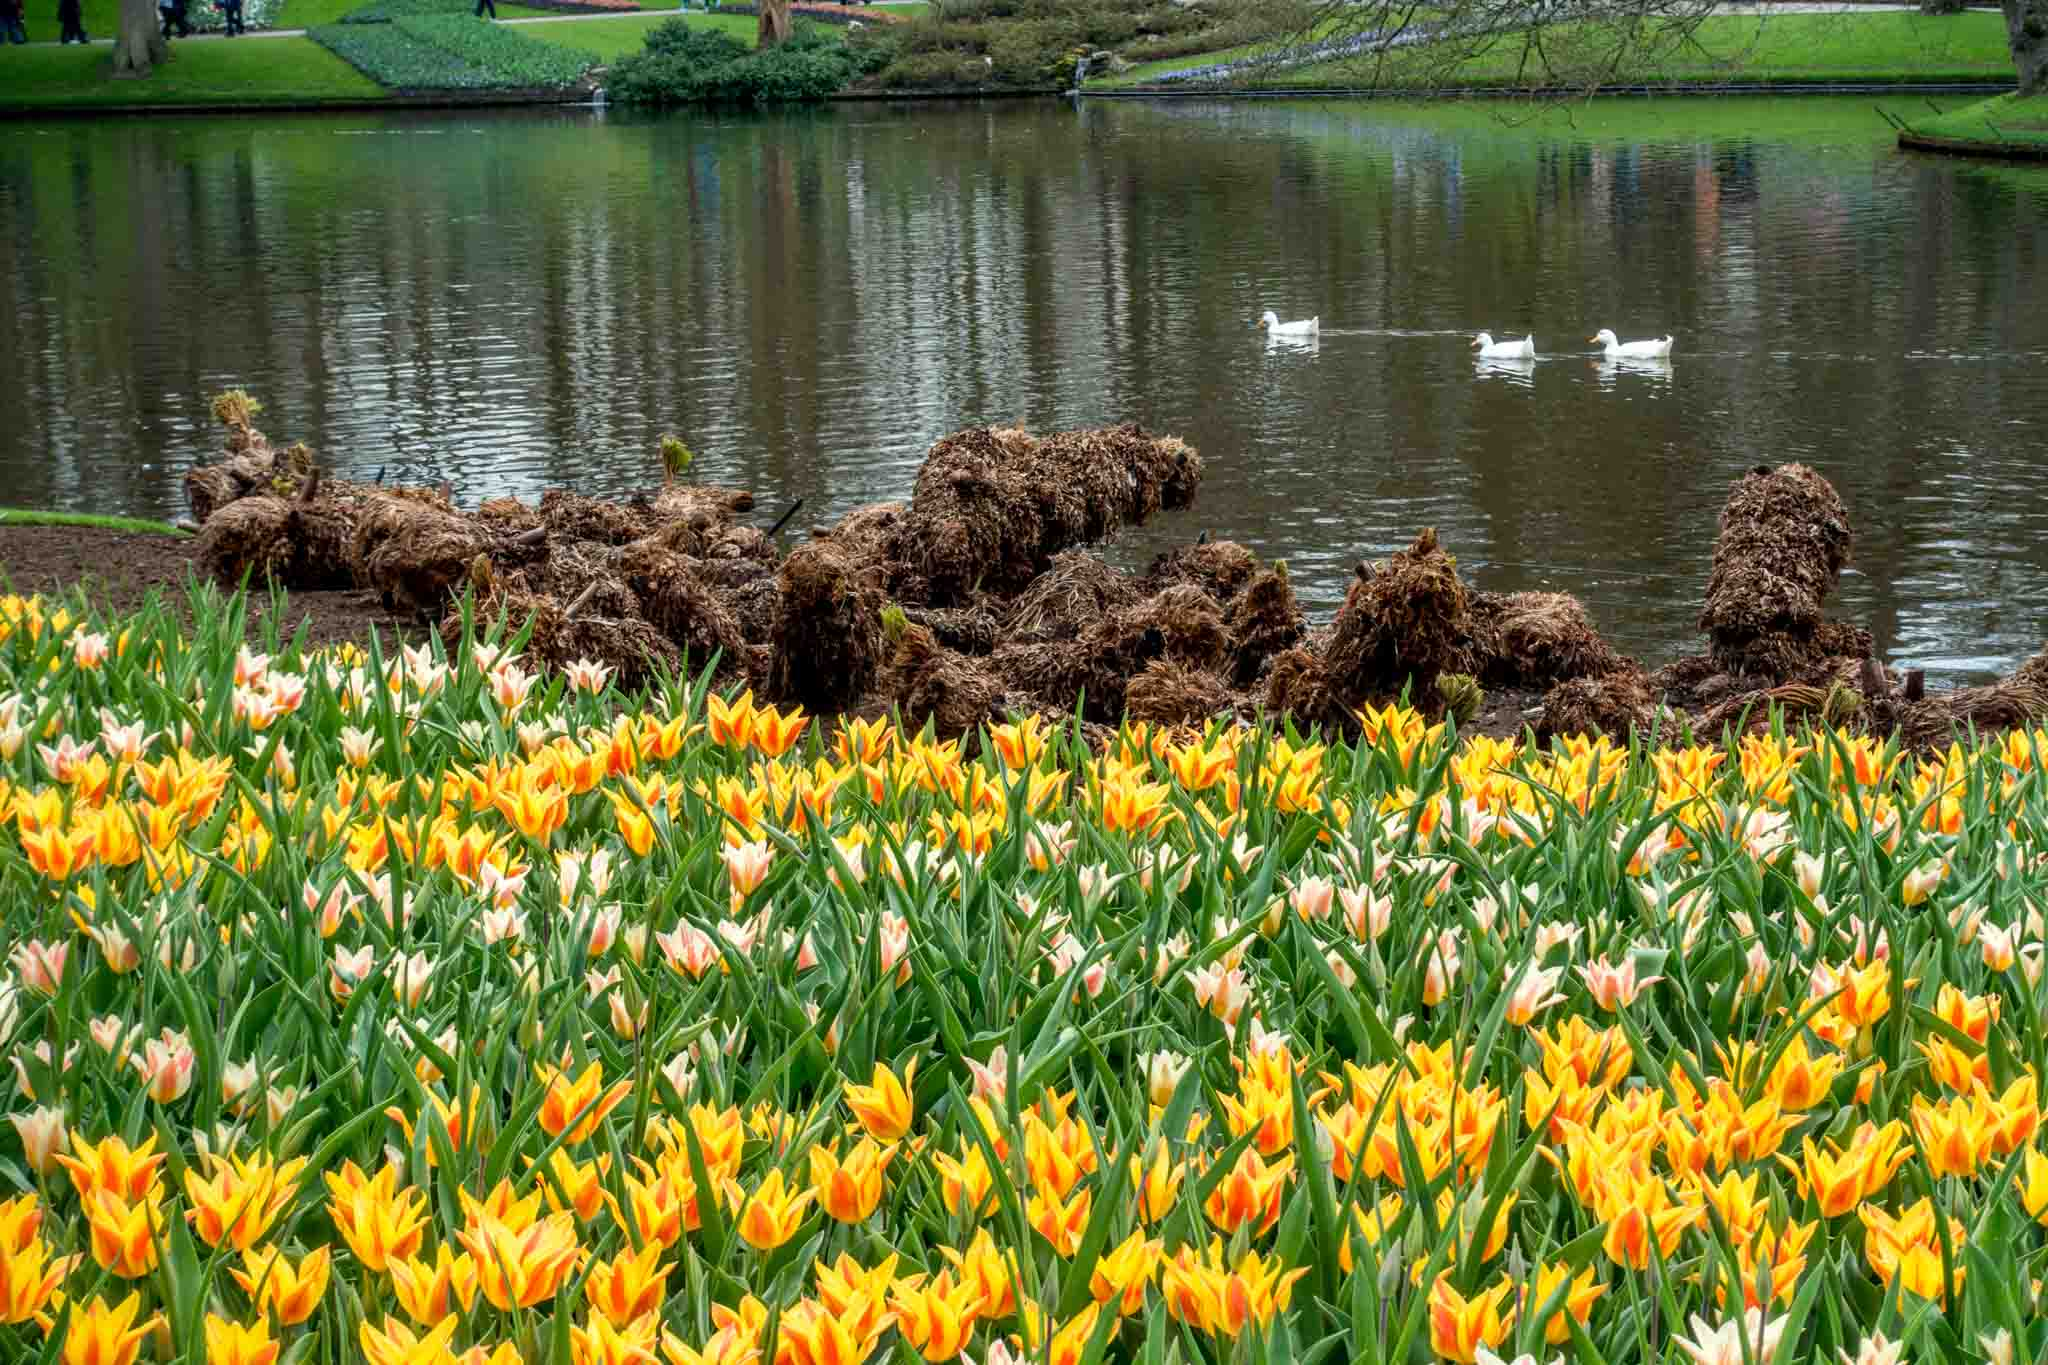 Tulips along a pond with ducks going by